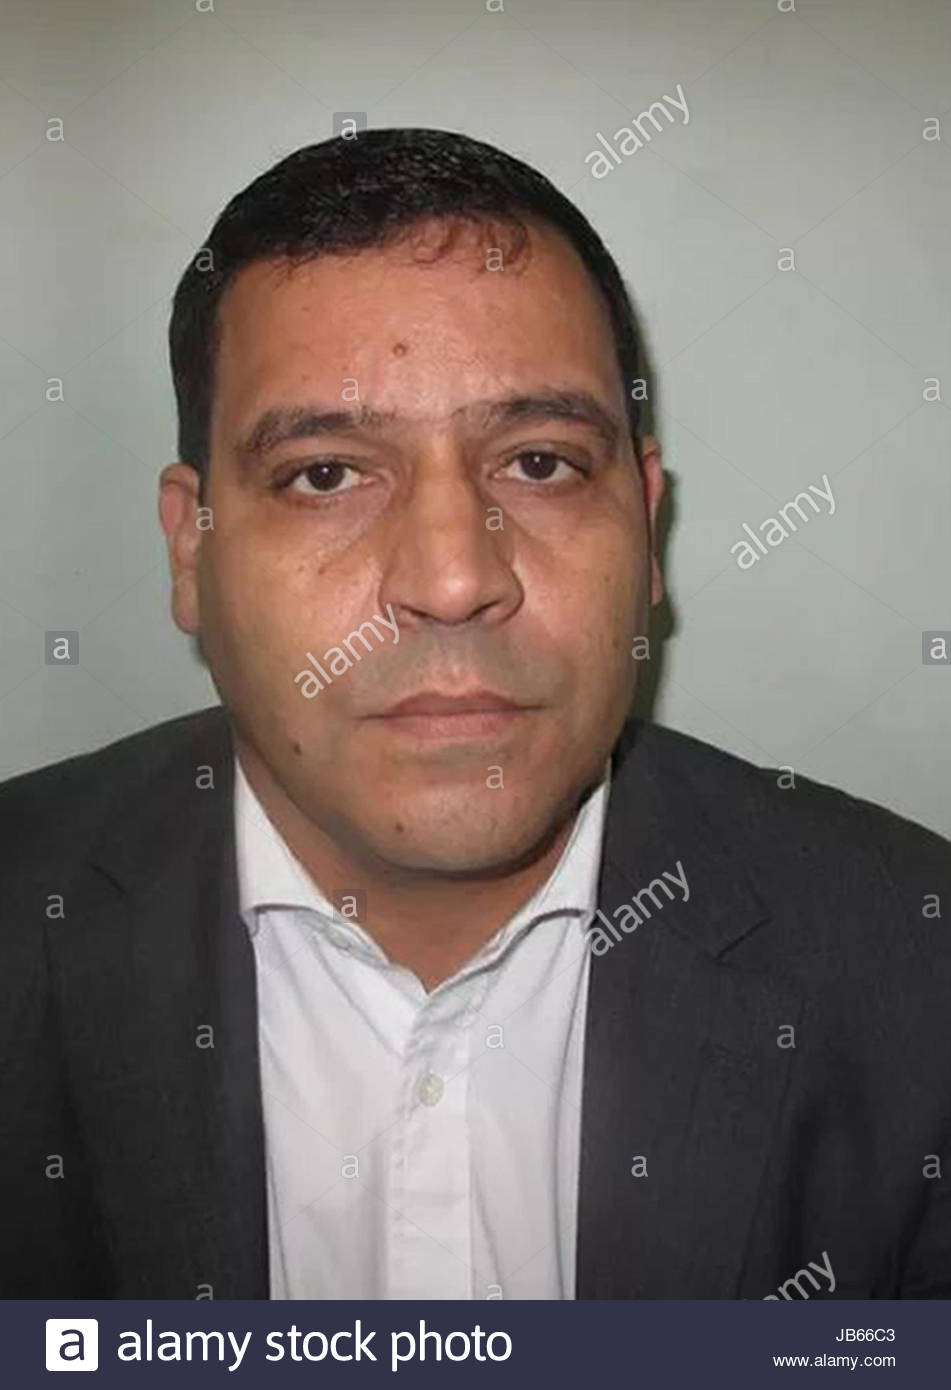 Metropolitan Police undated handout photo of Mohamed Amrani, an internationally respected heart surgeon who has - Stock Image